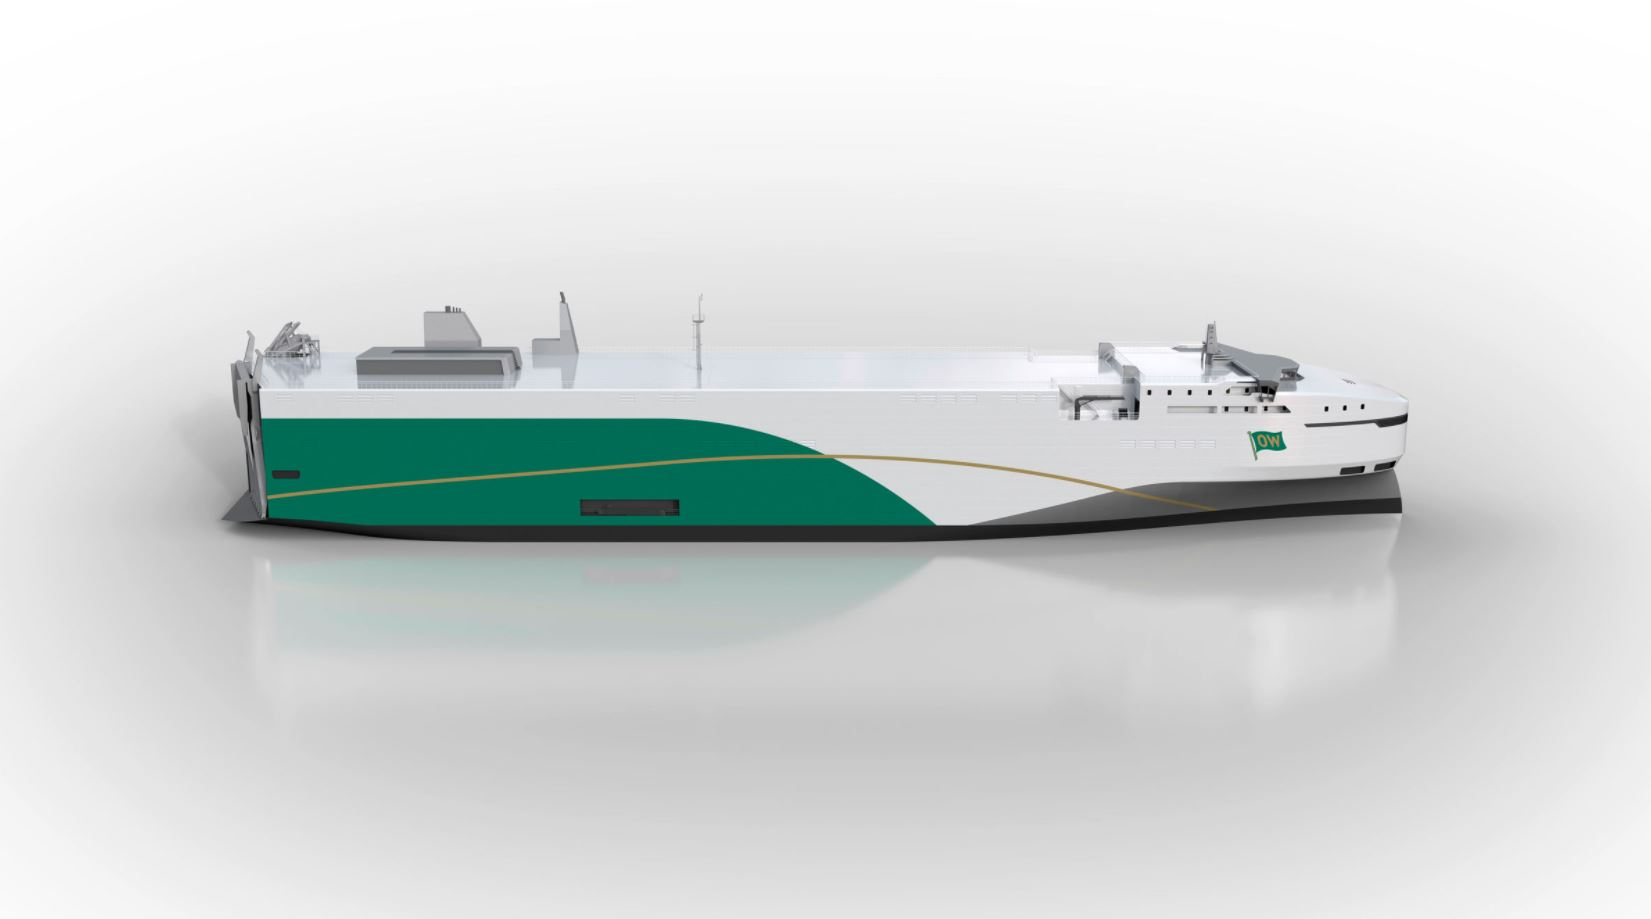 Germany's Volkswagen continues to boost LNG-powered car carrier fleet